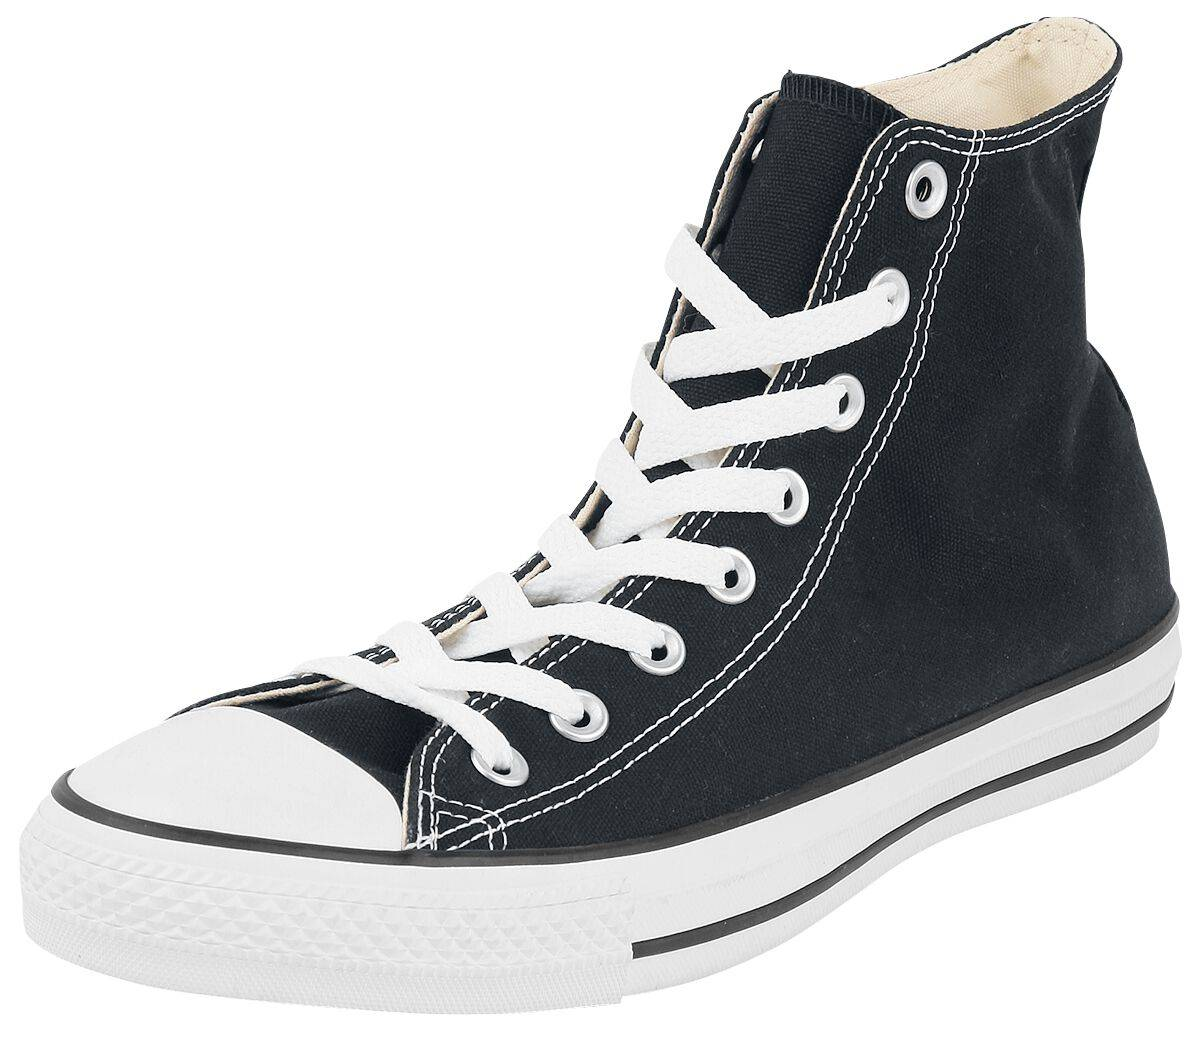 M9160 Converse Chuck Taylor All Star High Scarpe sportive nero